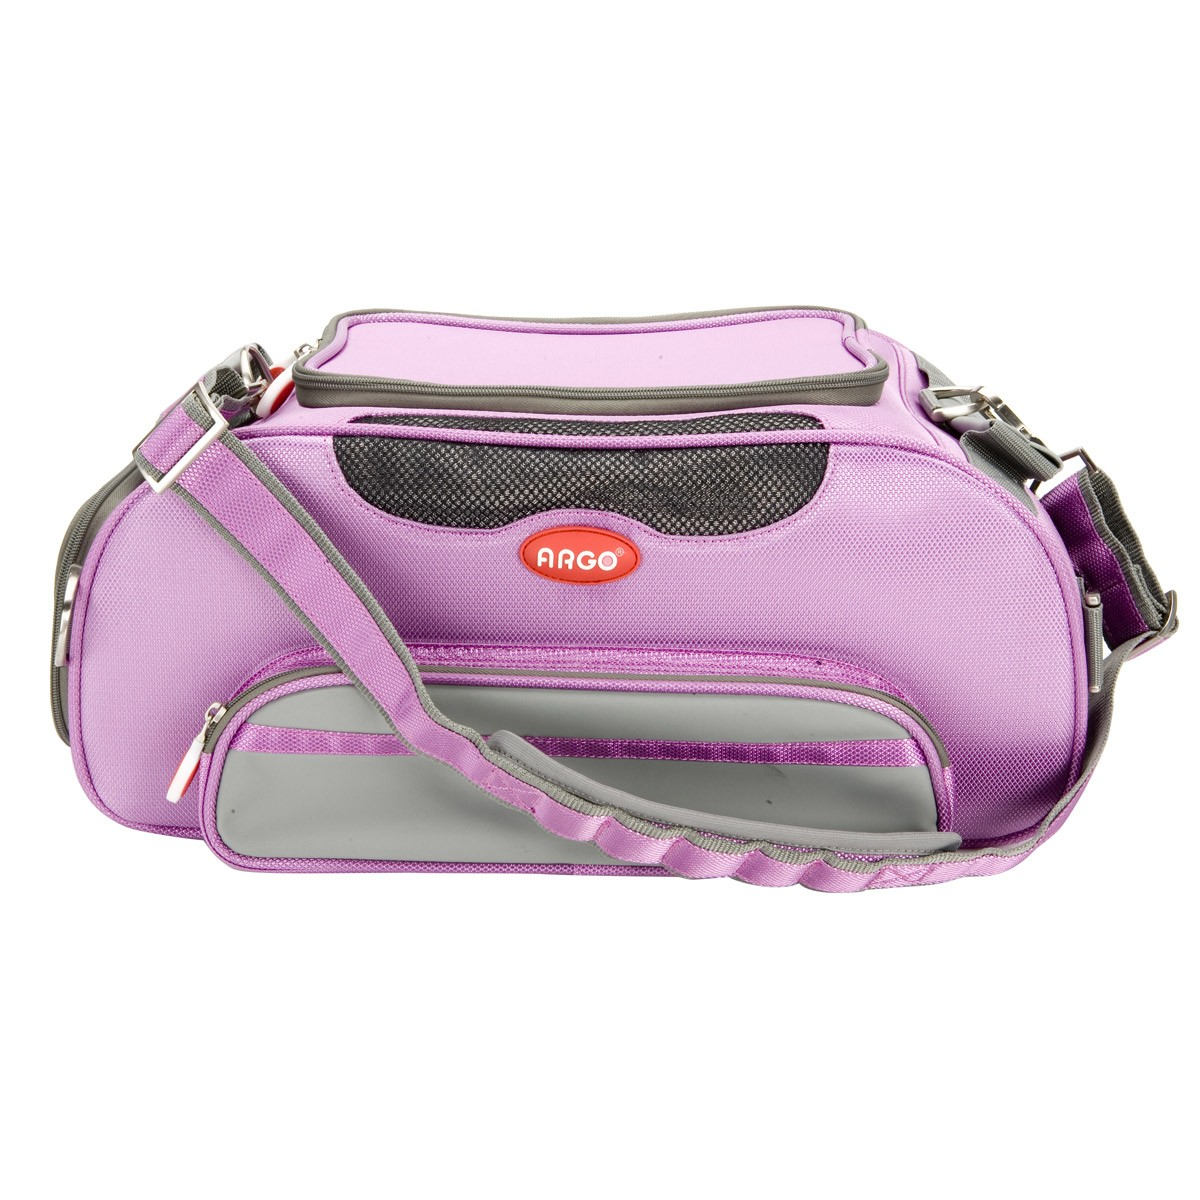 a5b32ddbd0 ARGO Aero-Pet Airline Approved Carrier Petal Pink Small - 18.5 in